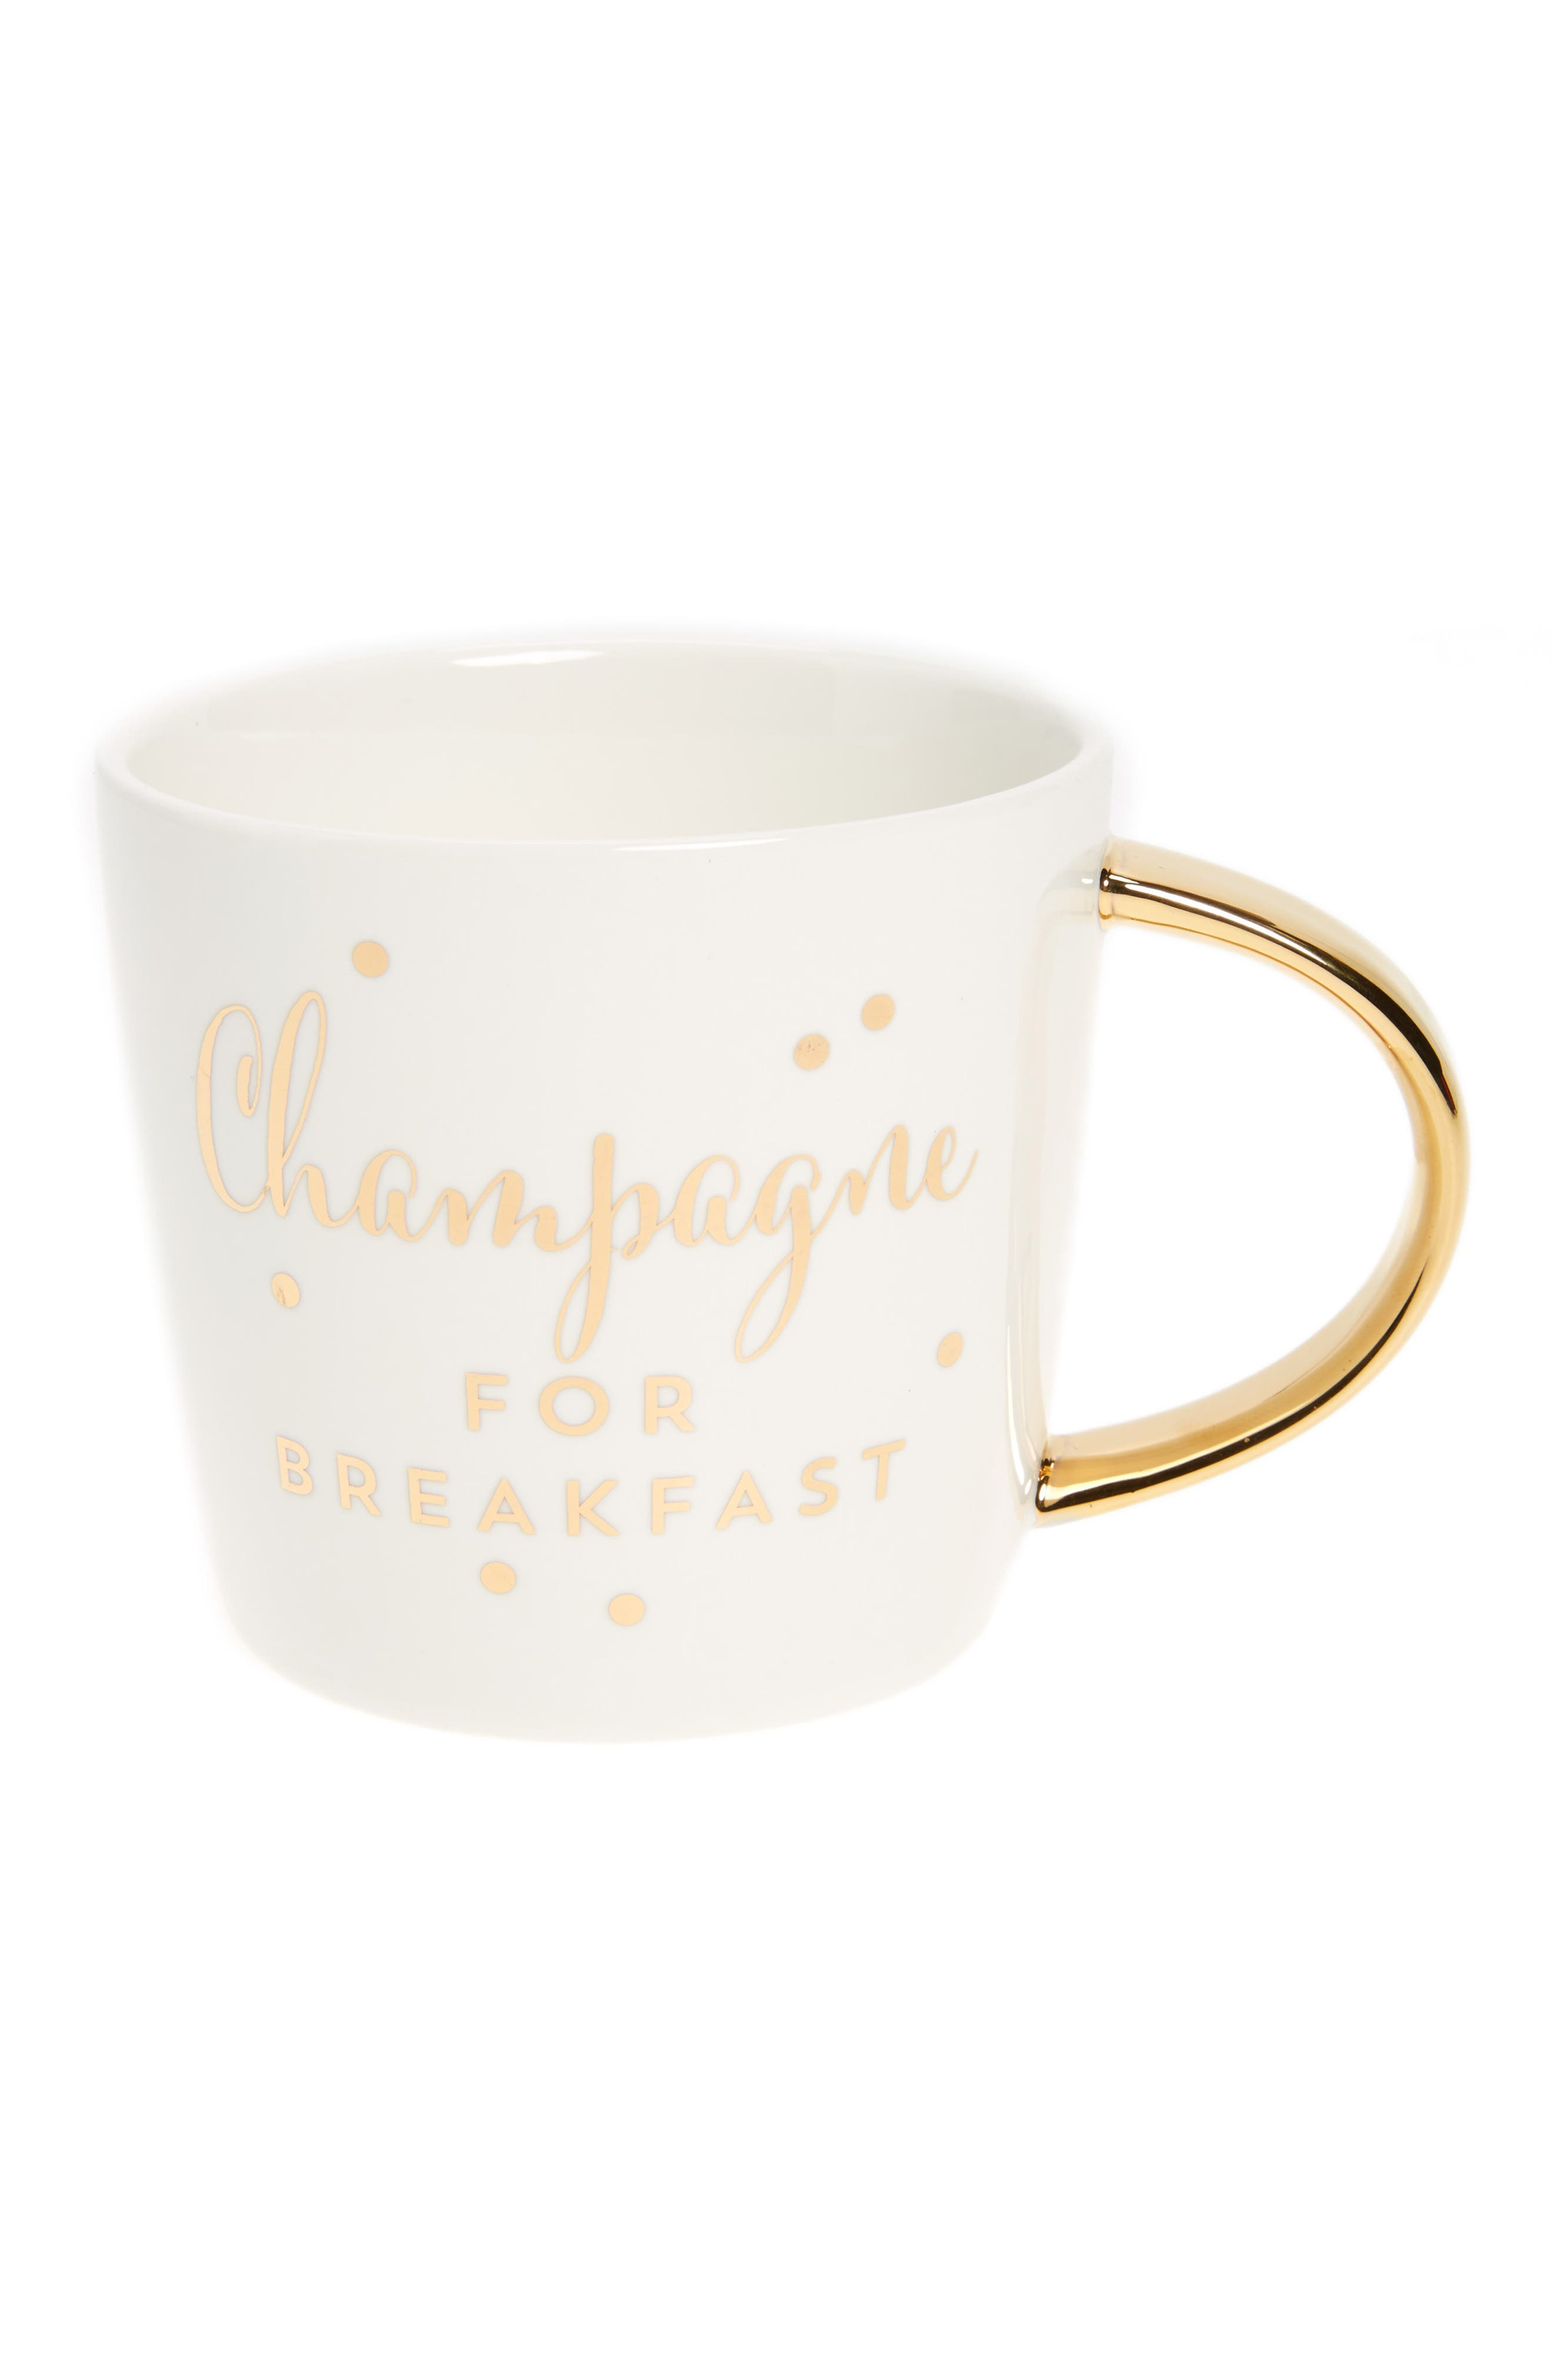 Main Image - Slant Collections Champagne For Breakfast Mug